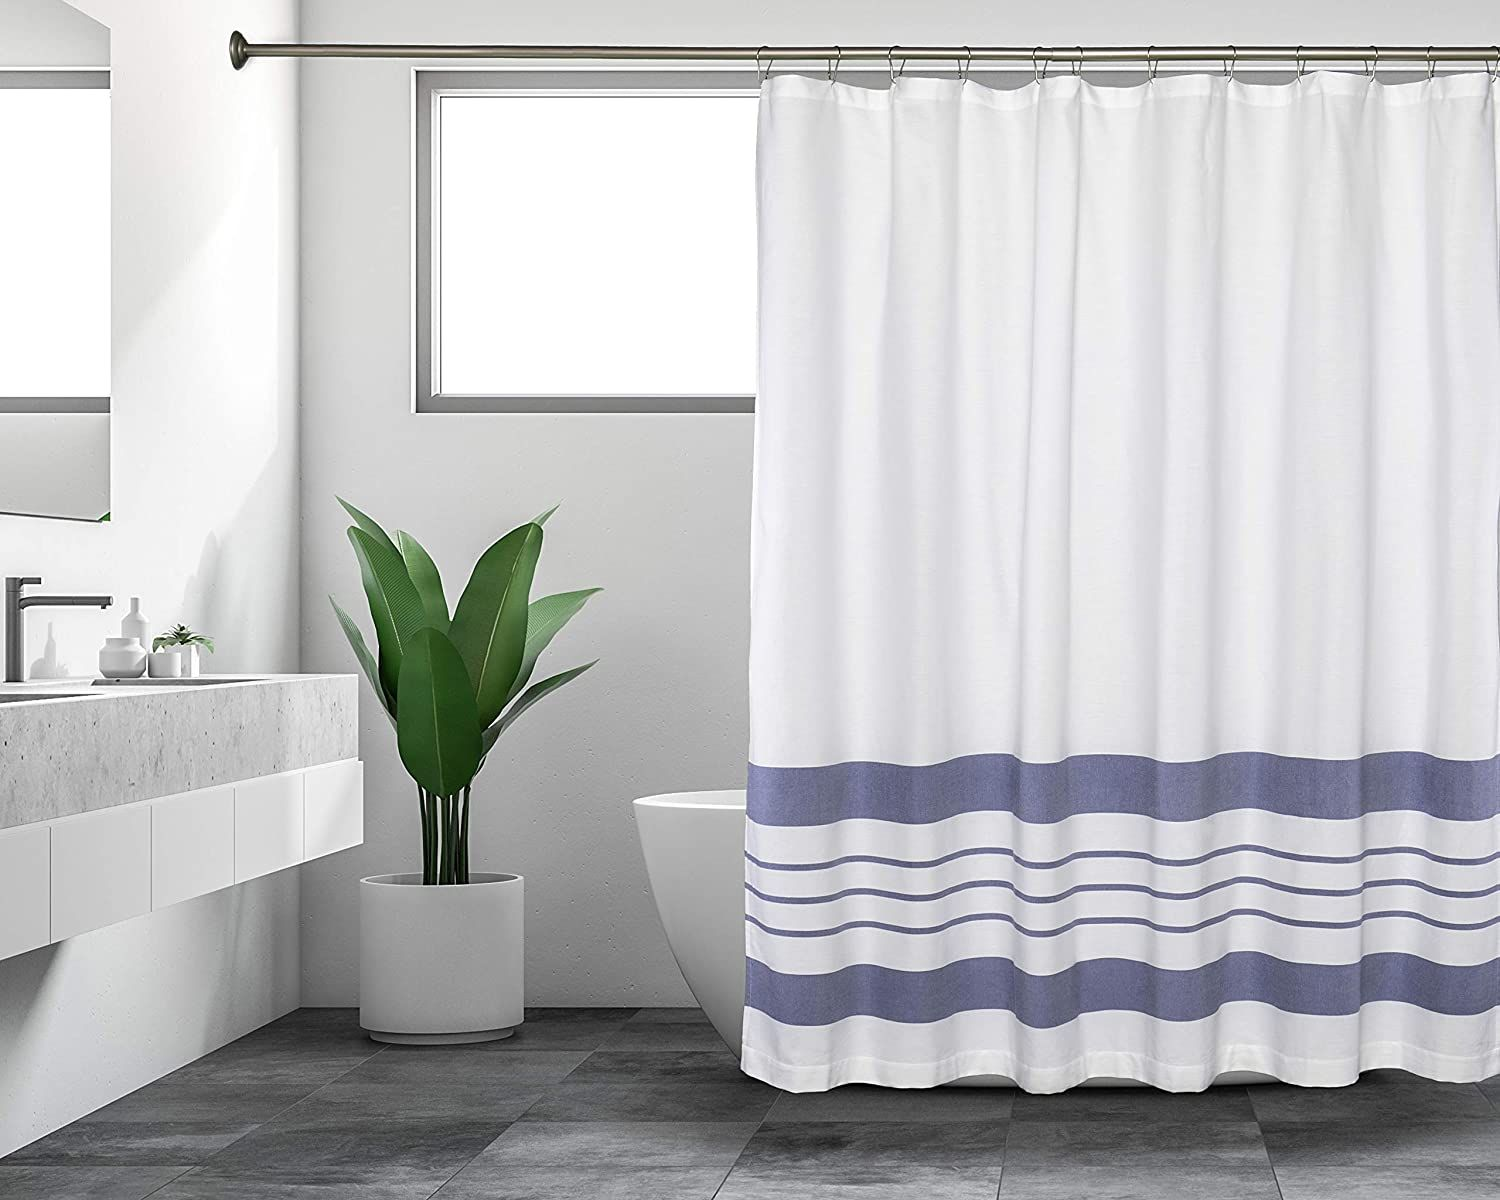 Sticky Toffee Woven Cotton Fabric Shower Curtain, 72 x 72, White with Thick Stripes - Blue Thick Stripes